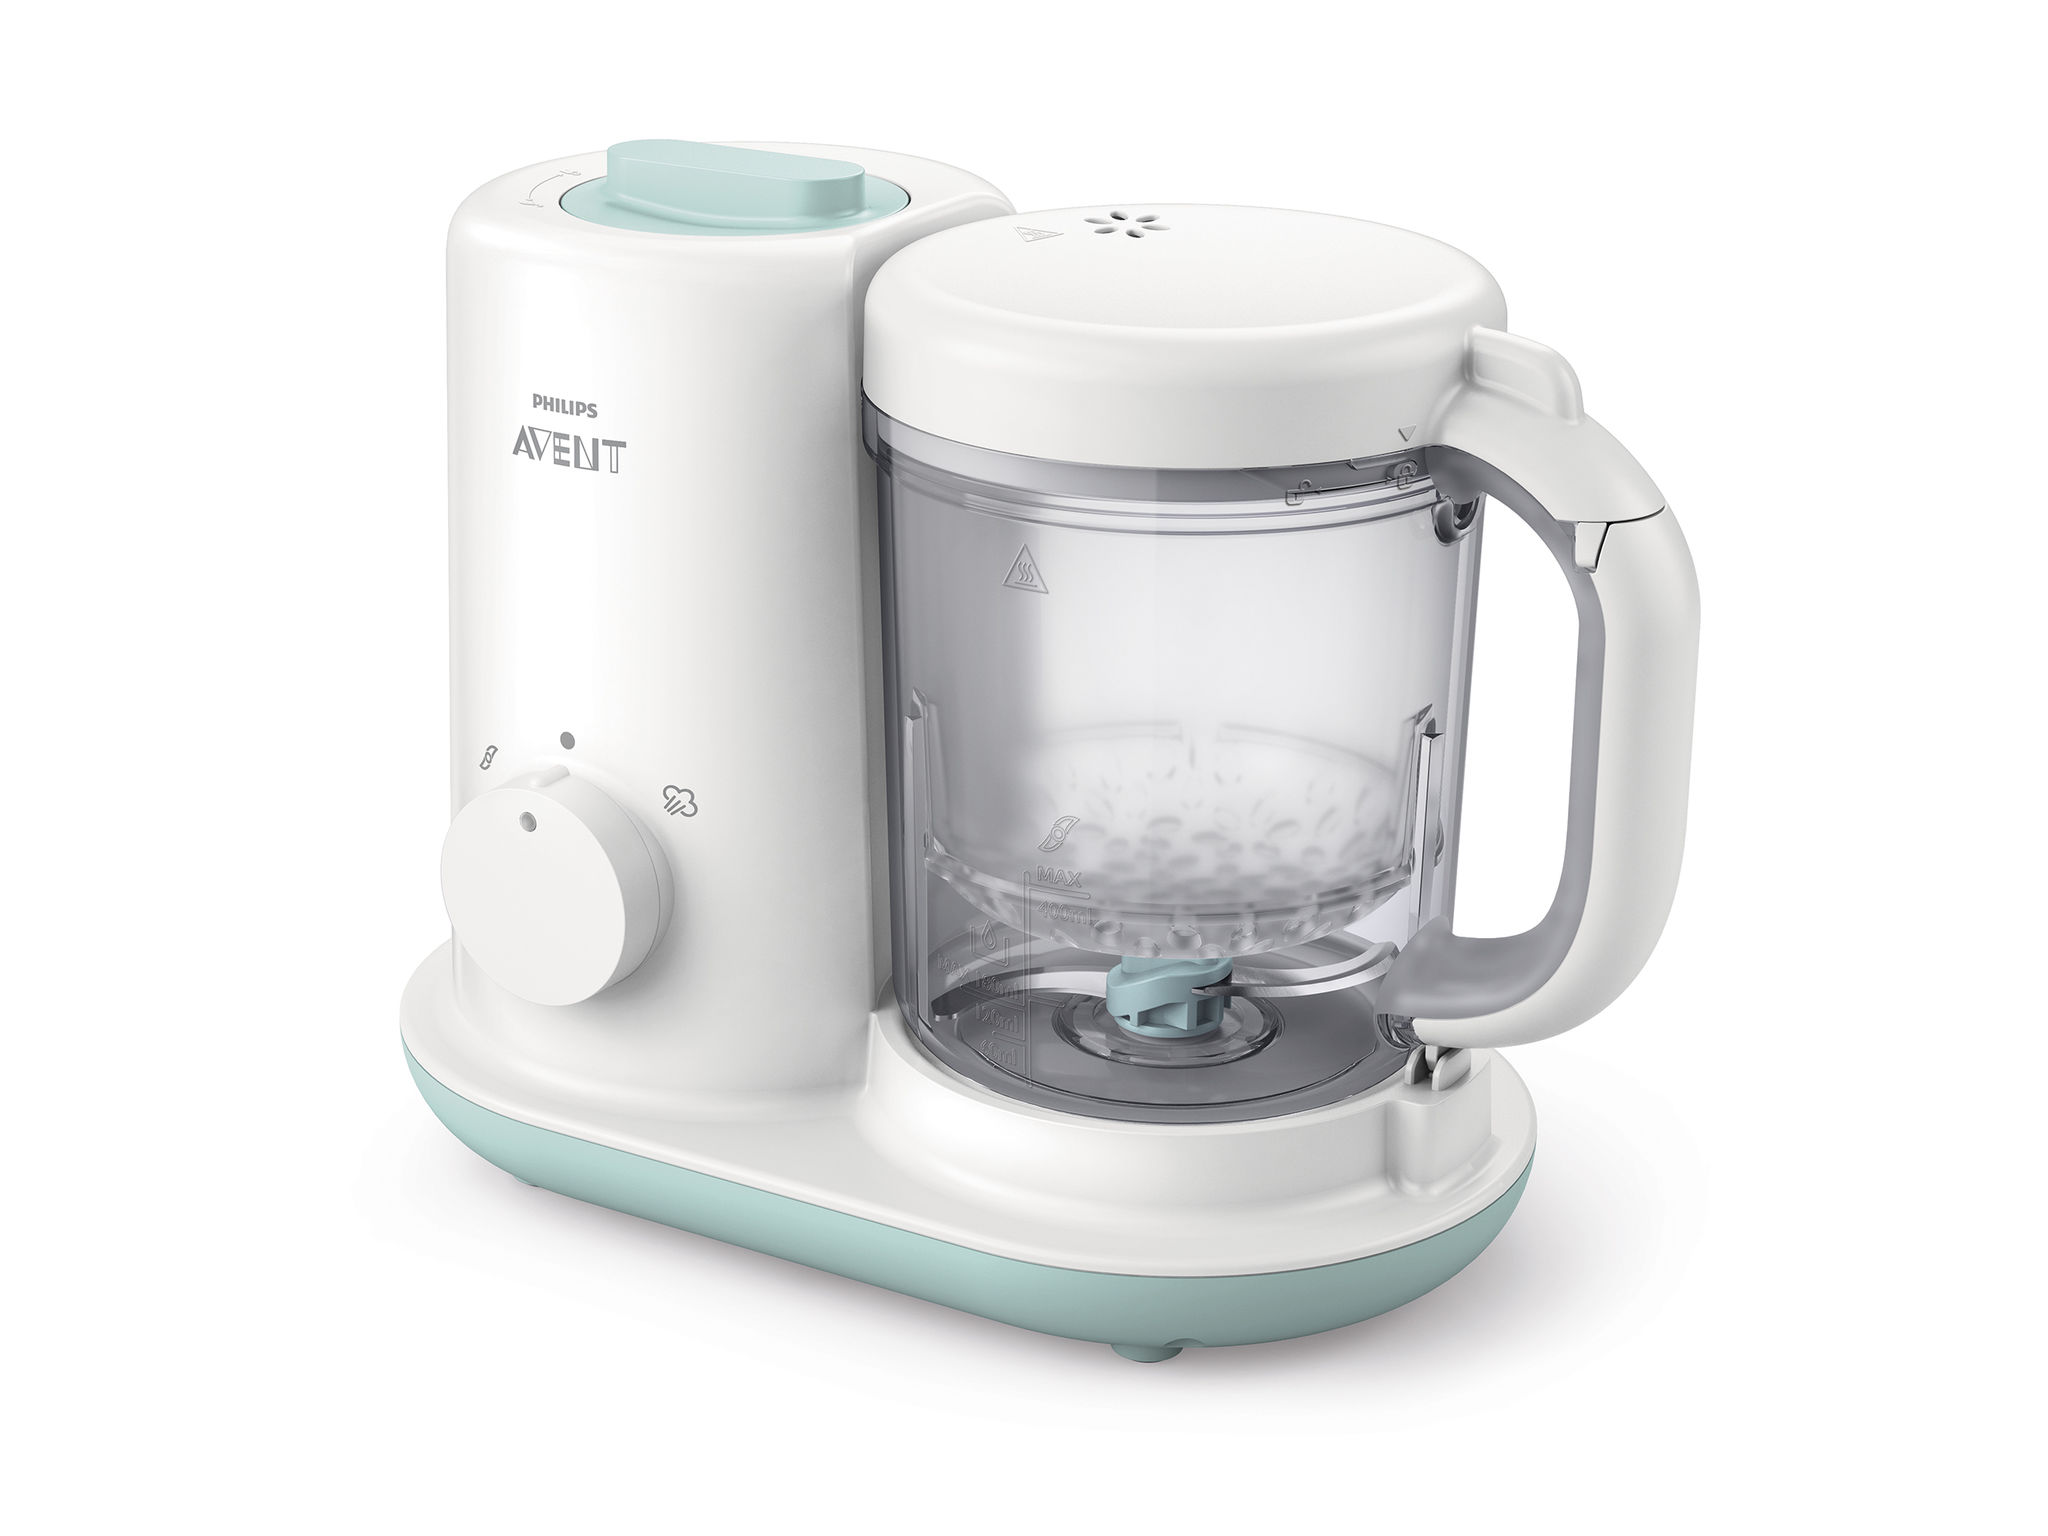 Philips Avent 2 In 1 Baby Food Prep Steamer Blender